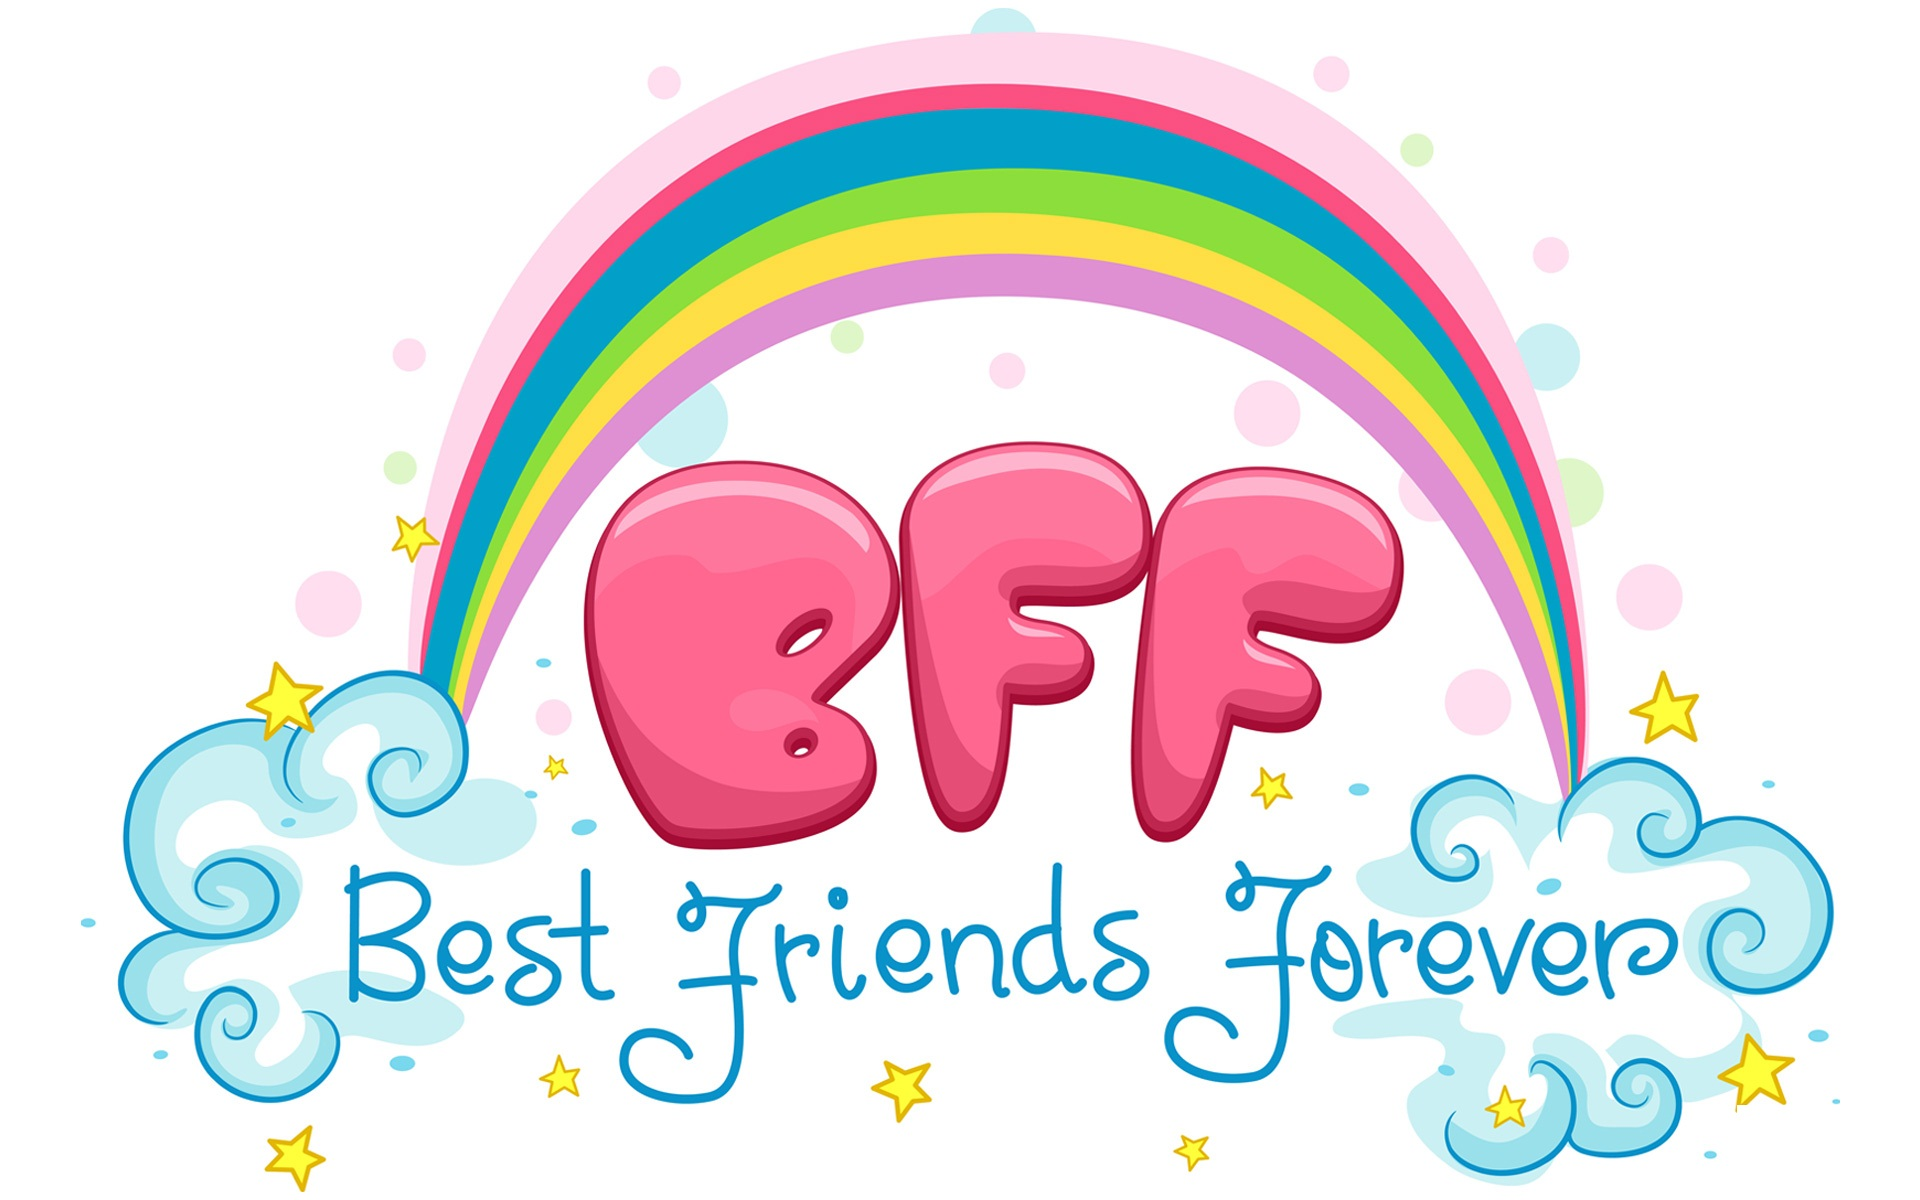 Best Friends Forever Wallpaper 70 Pictures: Wallpaper, High Definition, High